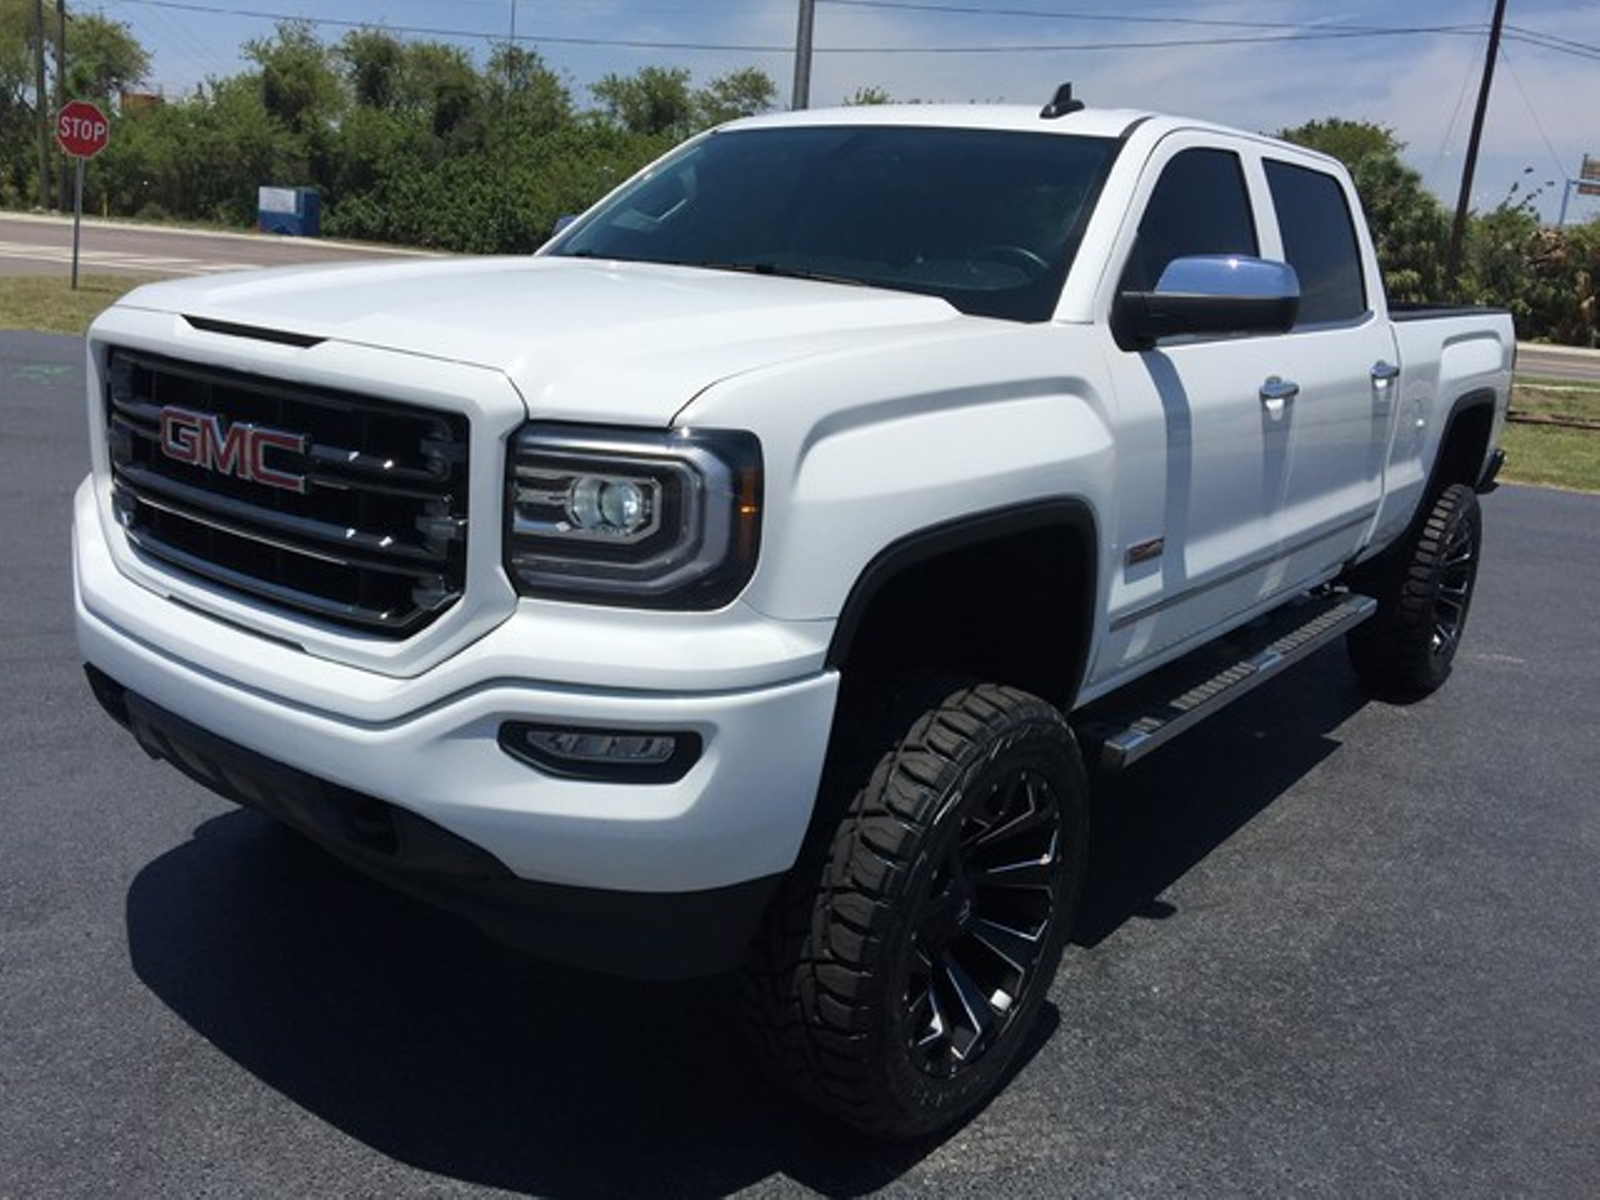 2016 gmc sierra 1500 all terrain custom lifted 22s florida. Black Bedroom Furniture Sets. Home Design Ideas